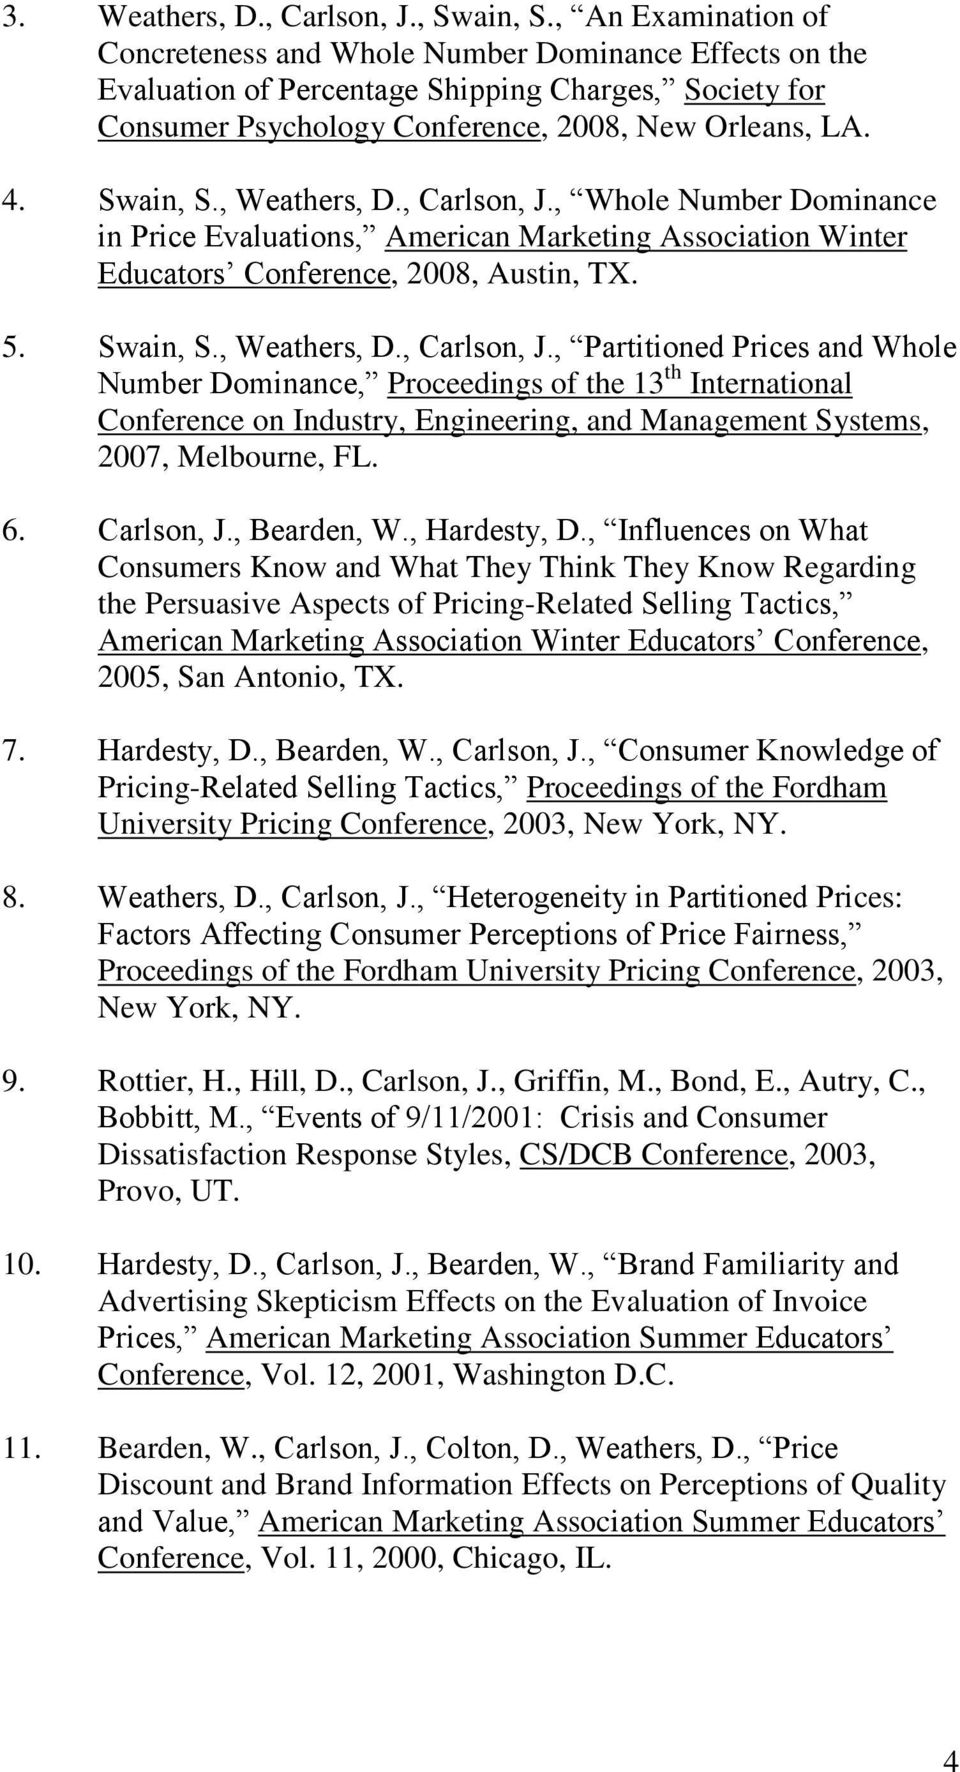 , Weathers, D., Carlson, J., Whole Number Dominance in Price Evaluations, American Marketing Association Winter Educators Conference, 2008, Austin, TX. 5. Swain, S., Weathers, D., Carlson, J., Partitioned Prices and Whole Number Dominance, Proceedings of the 13 th International Conference on Industry, Engineering, and Management Systems, 2007, Melbourne, FL.